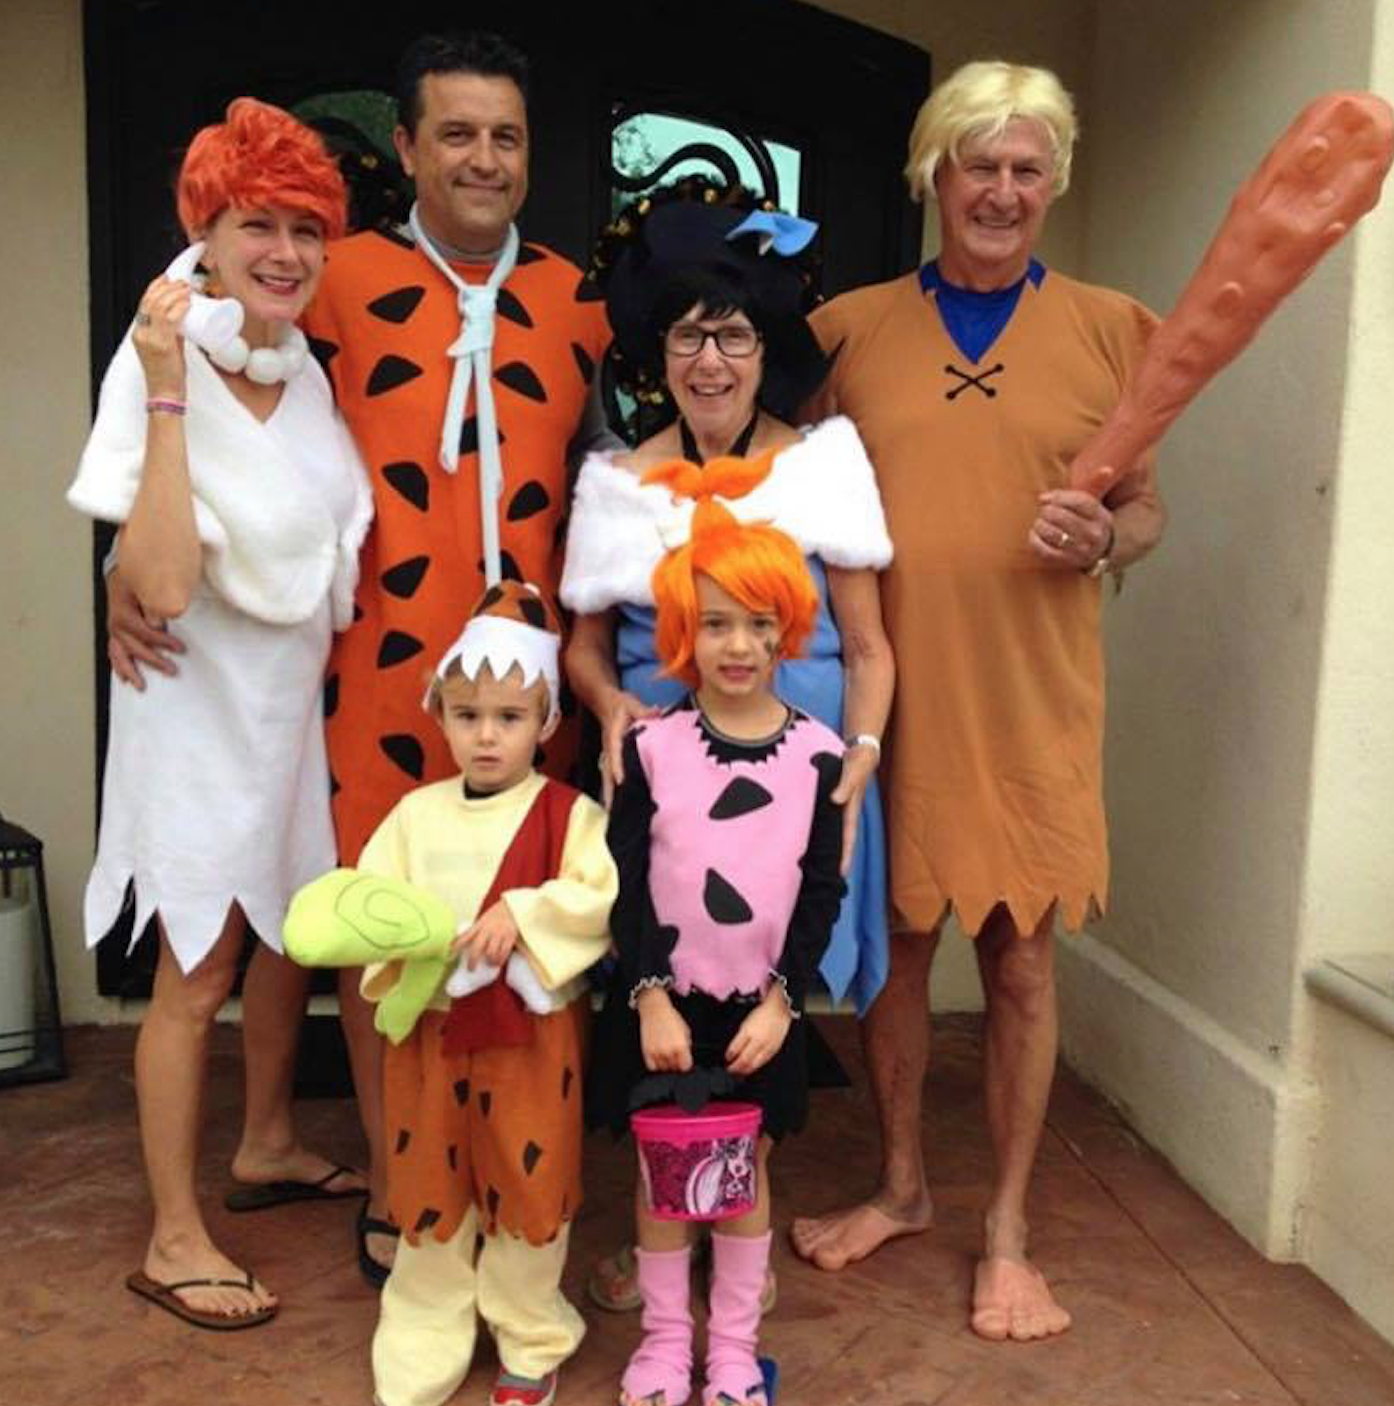 Flinstones family costume for Halloween